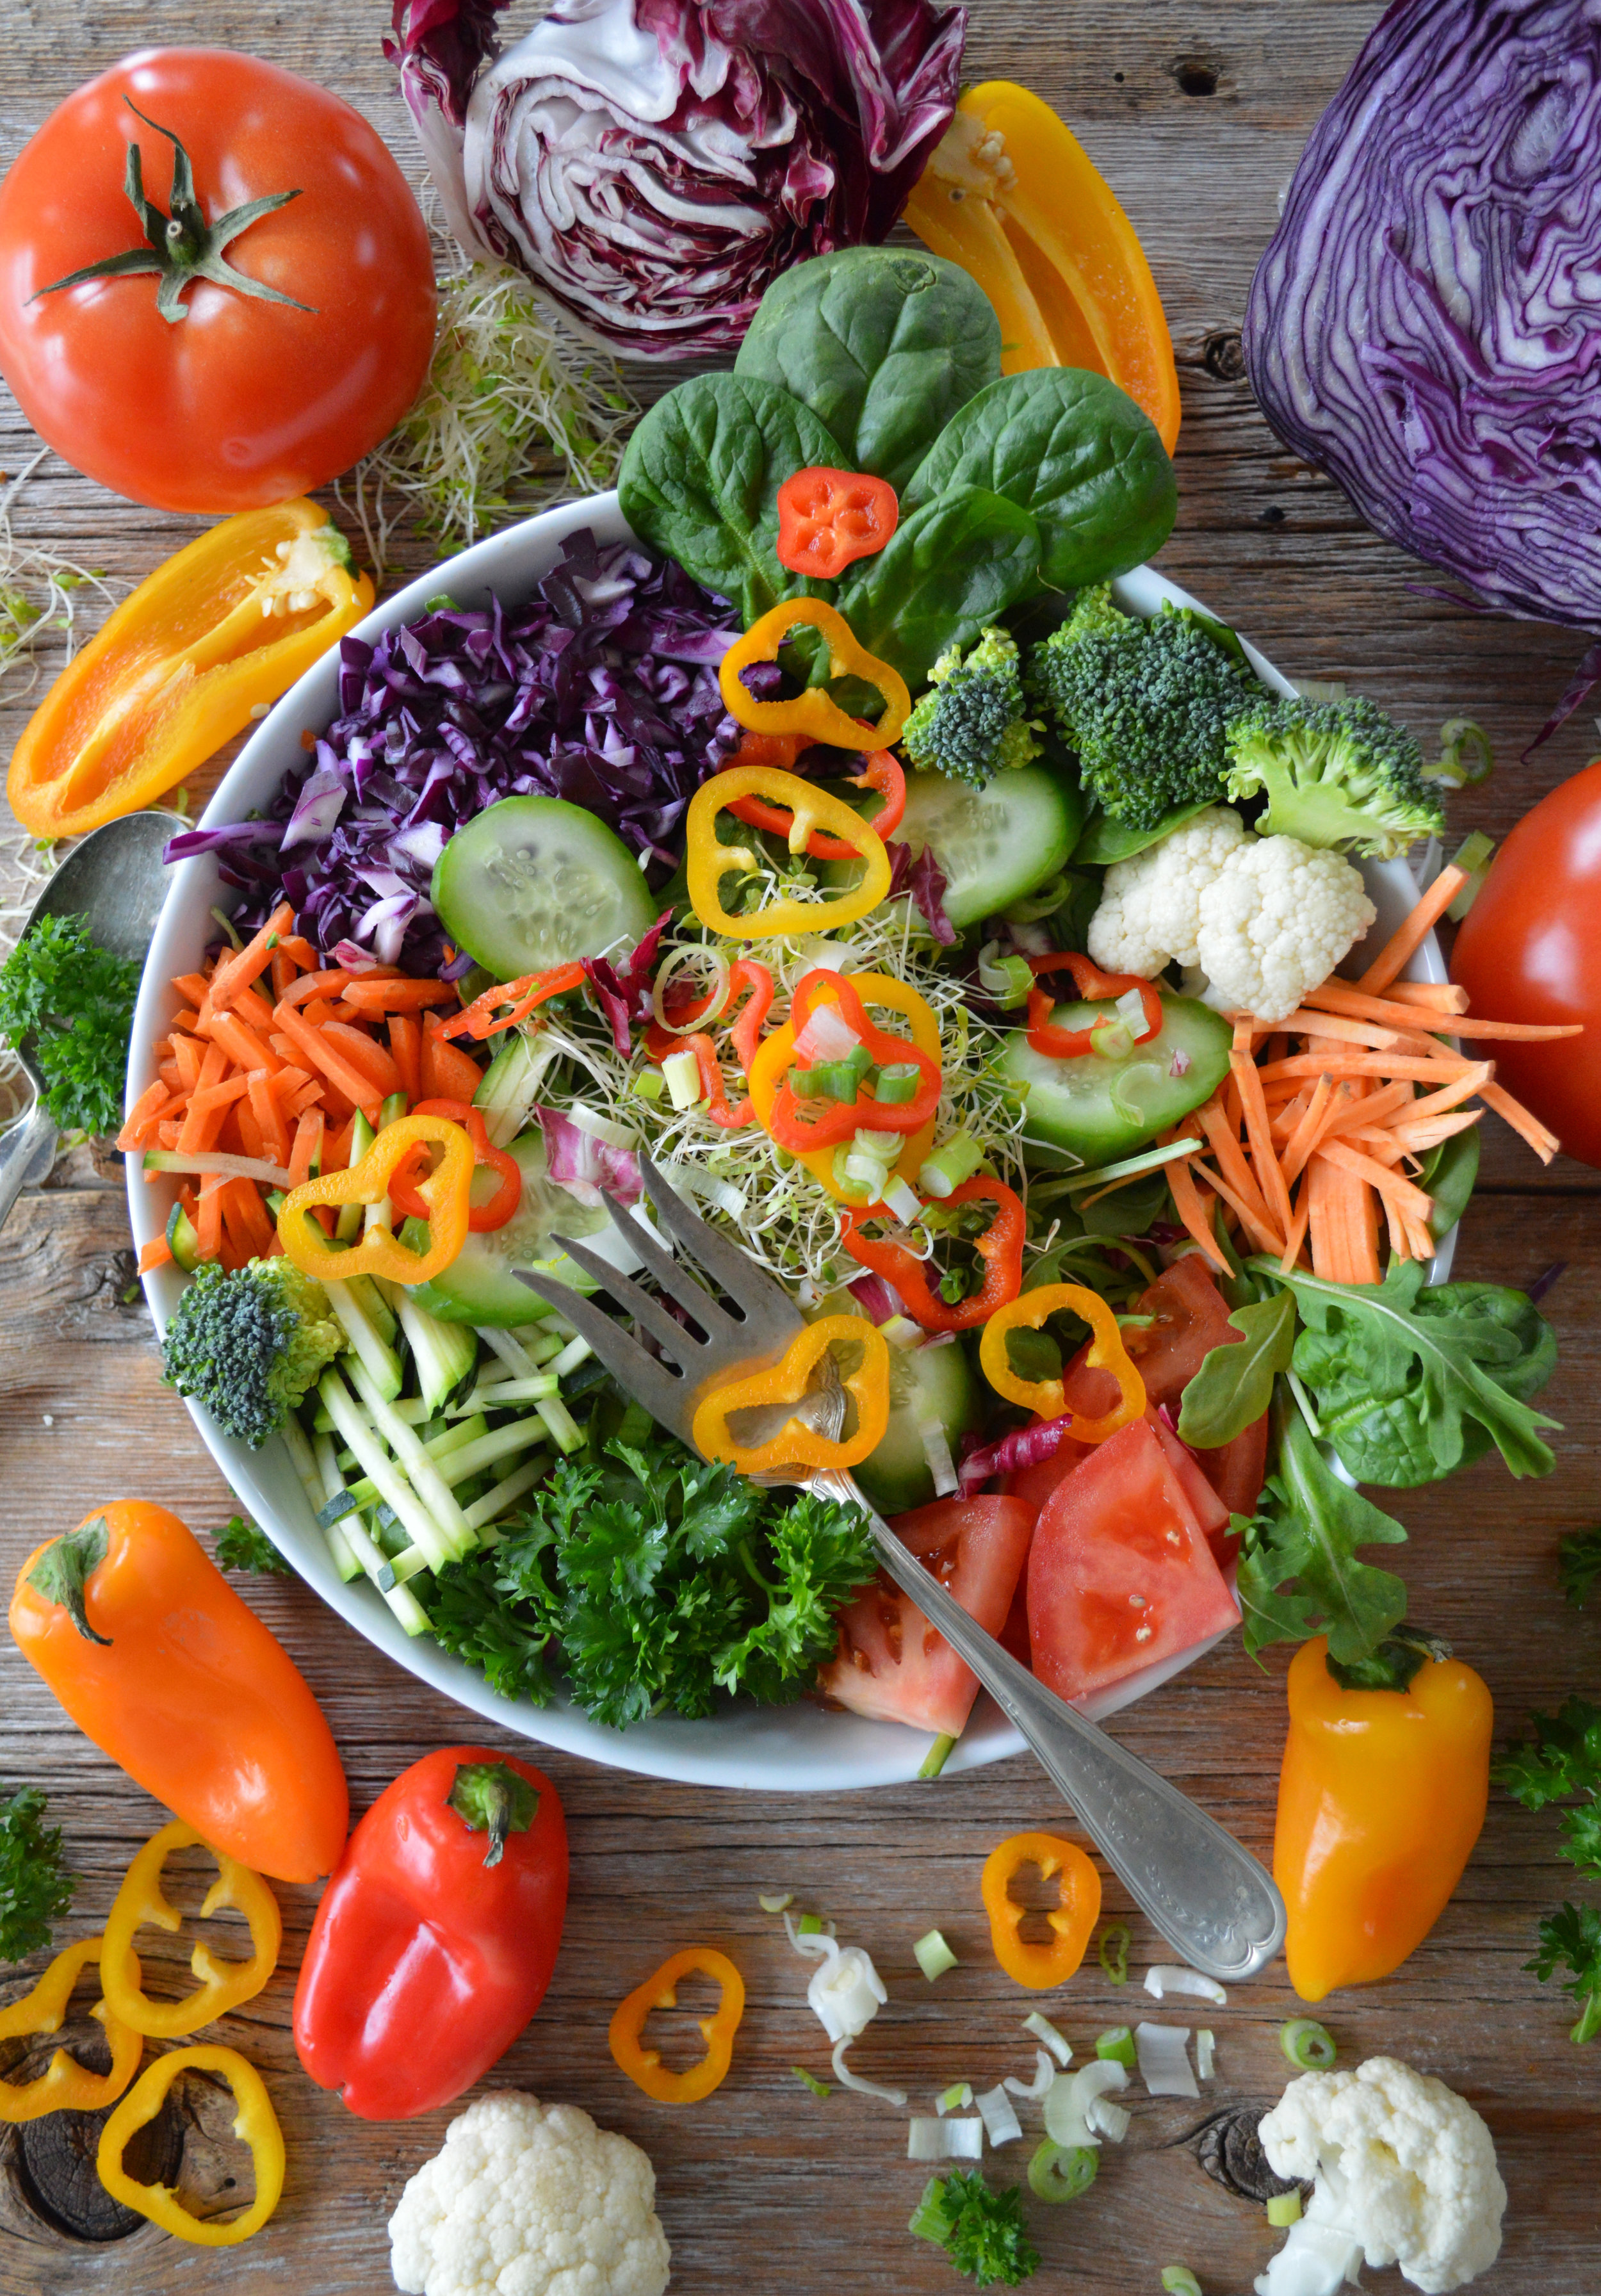 Low-FODMAP Veggies - The brighter the color, the better!